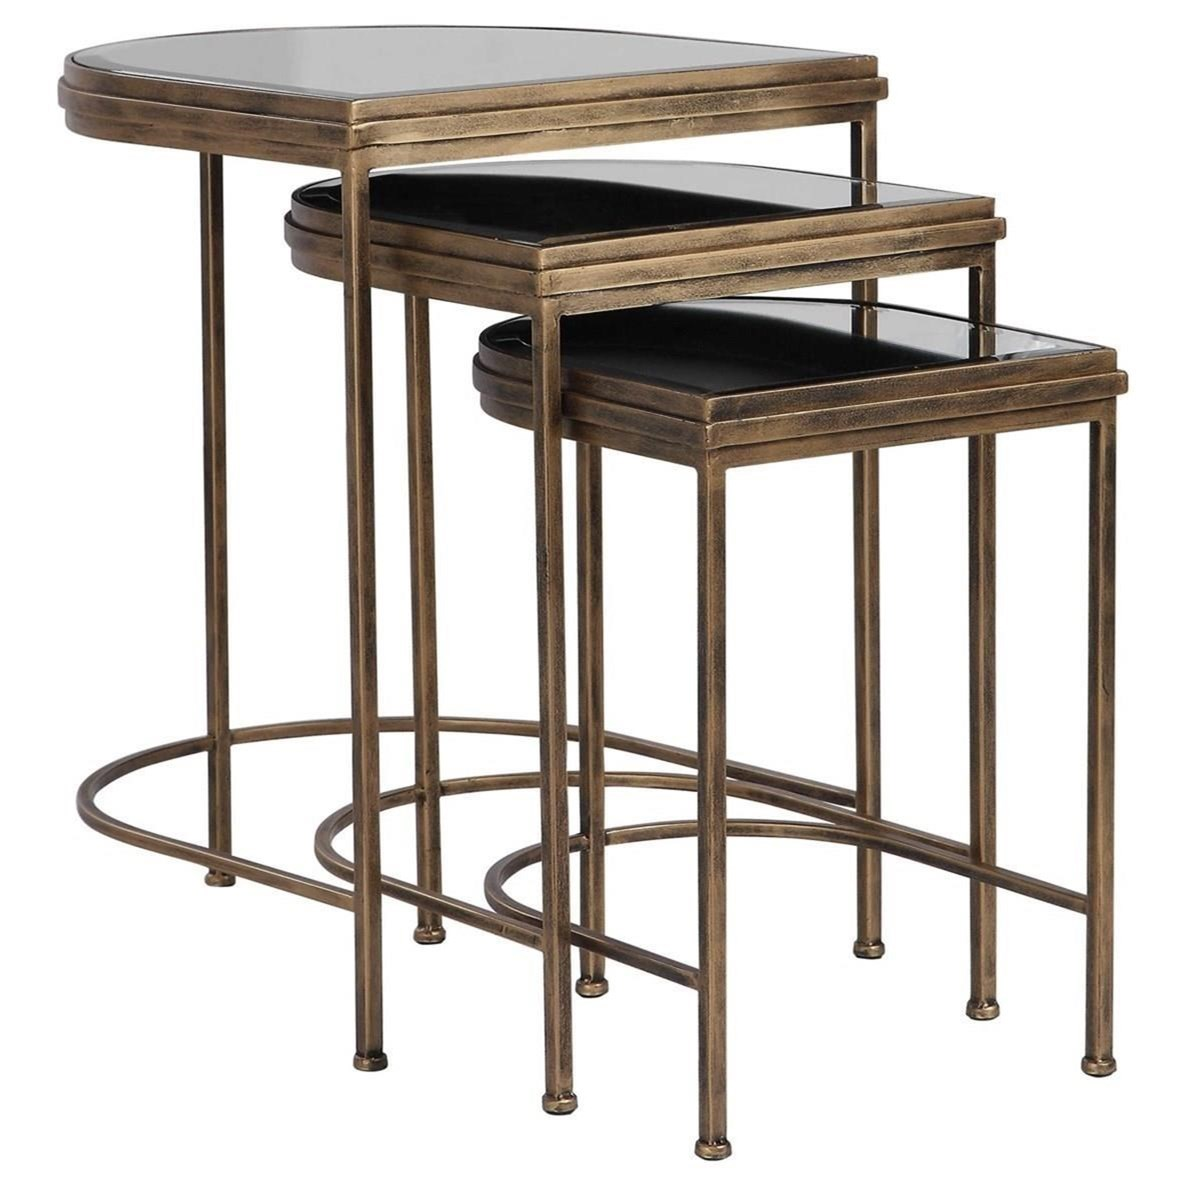 Accent Furniture - Occasional Tables India Nesting Tables, Set/3 by Uttermost at Upper Room Home Furnishings